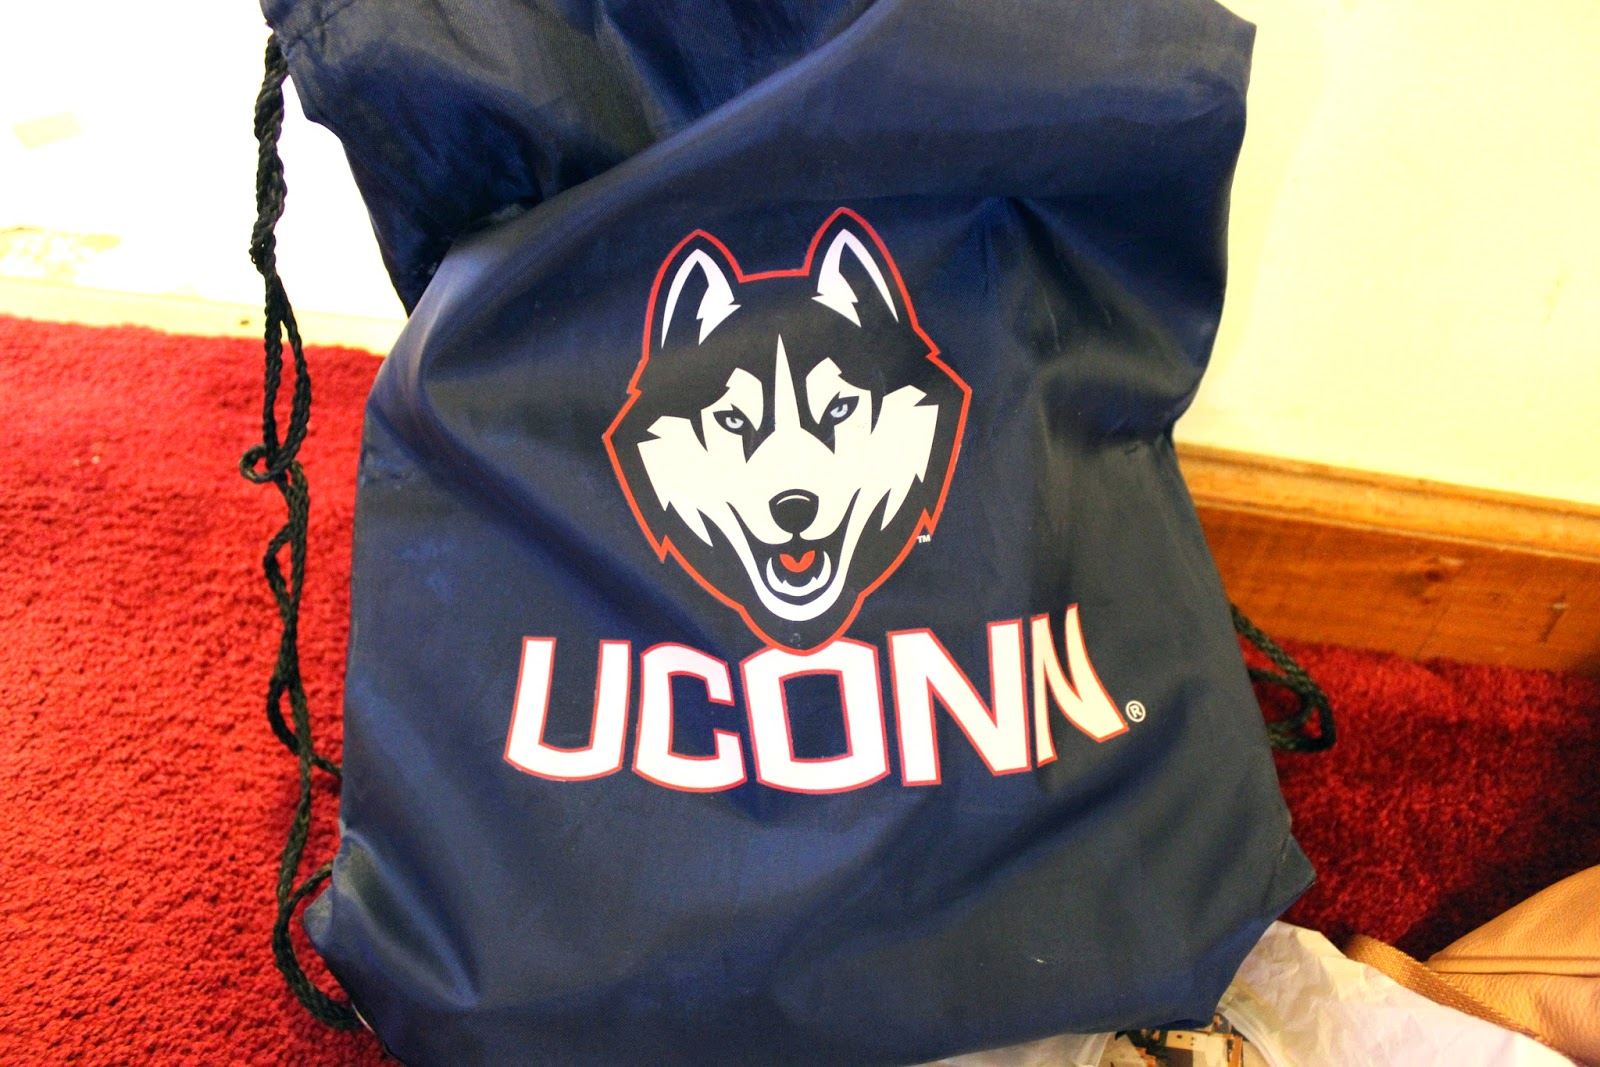 Uconn drawstring bag